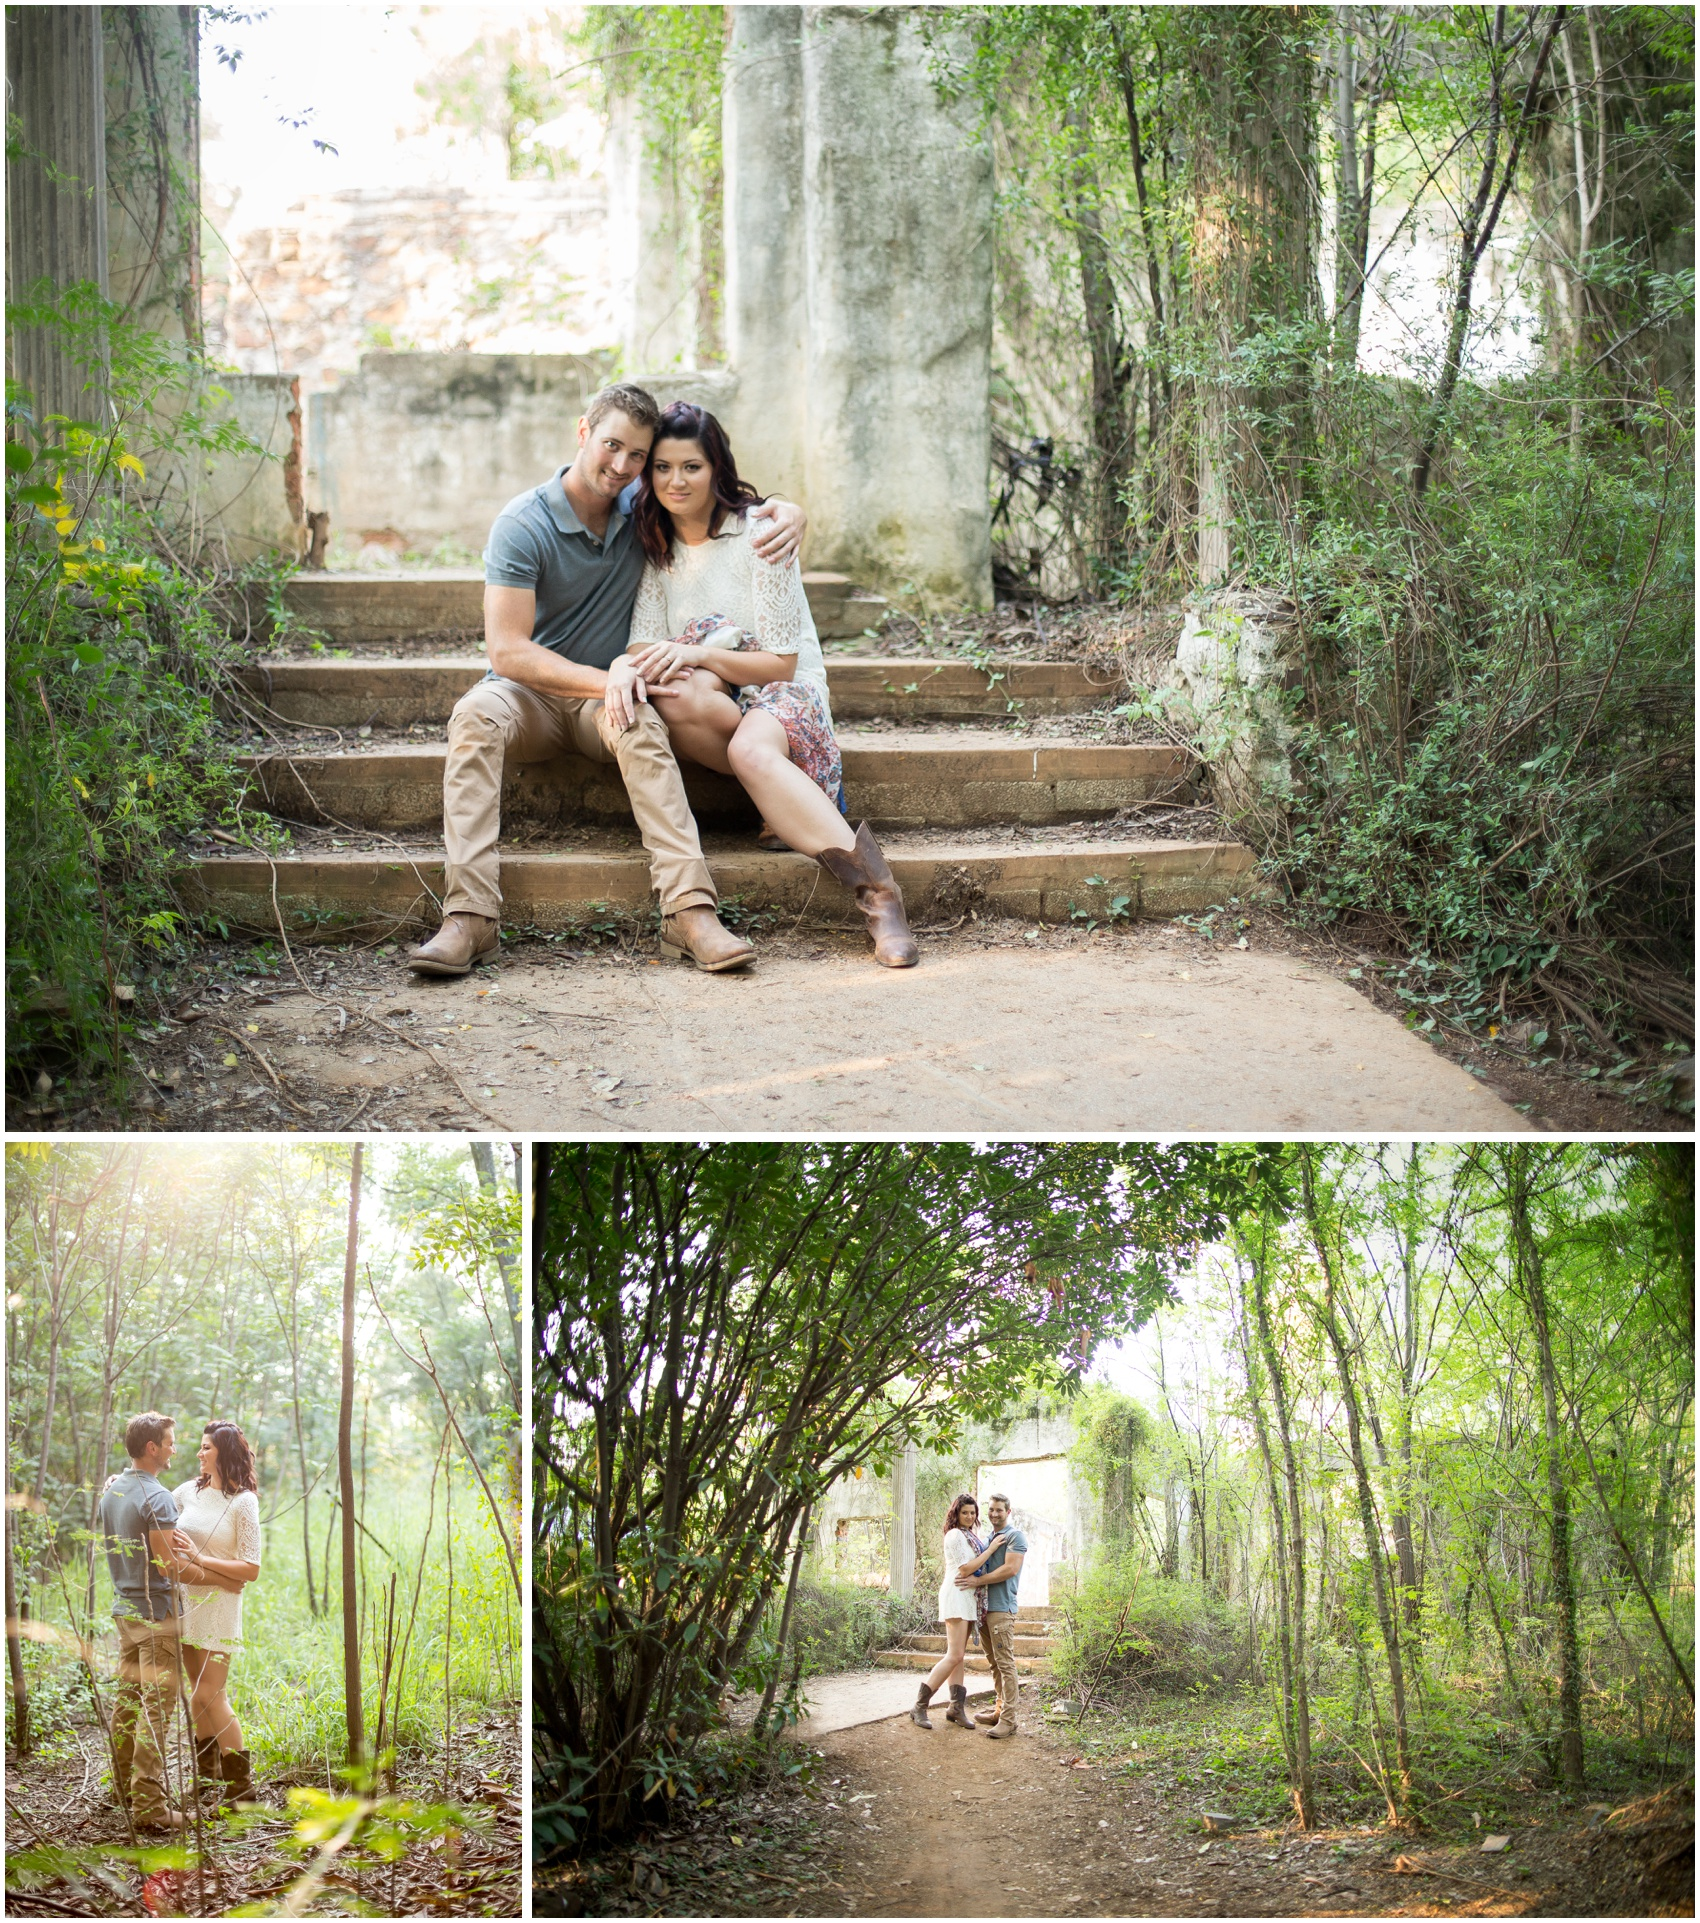 rosemary_hill_engagement_shoot_stephanie_and_jannie_06